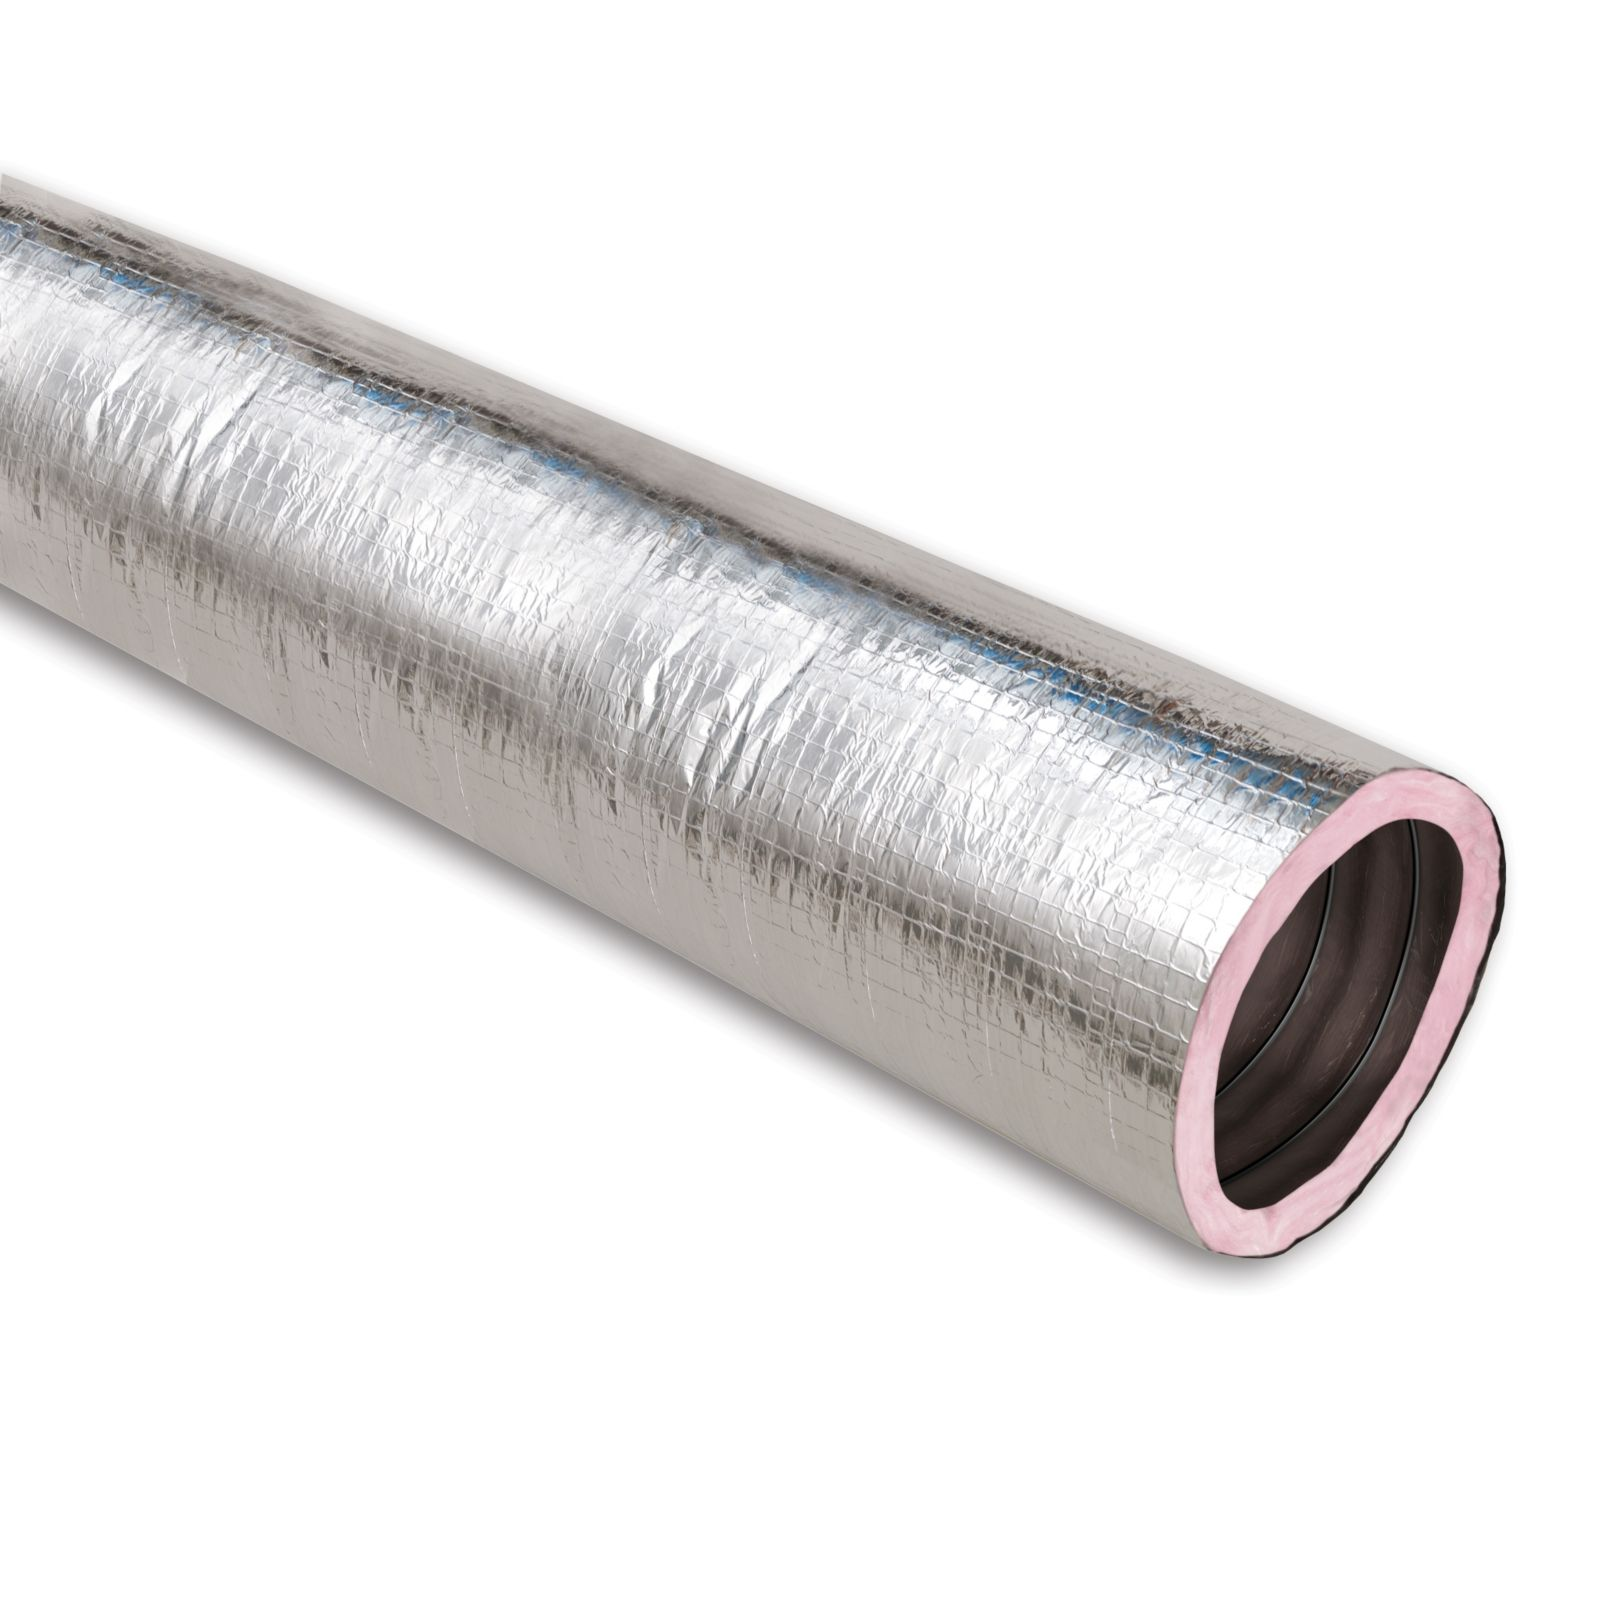 "Thermaflex 053820000002 - KM Silver Flex-Vent Insulated Flexible Air Duct, R6, 20"" X 25' Bag"